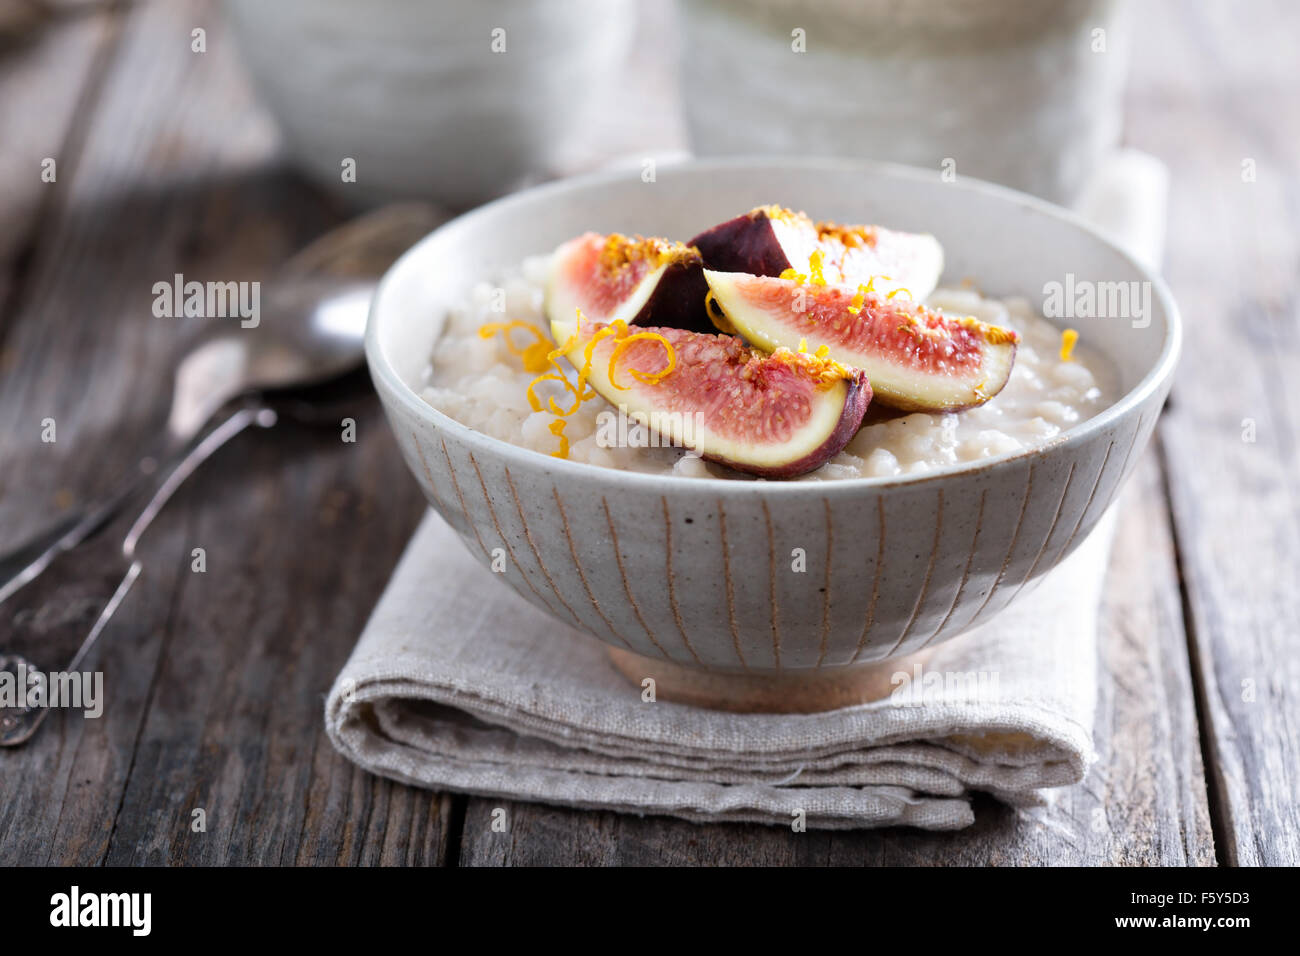 Rice pudding with vanilla, orange zest and fresh figs - Stock Image